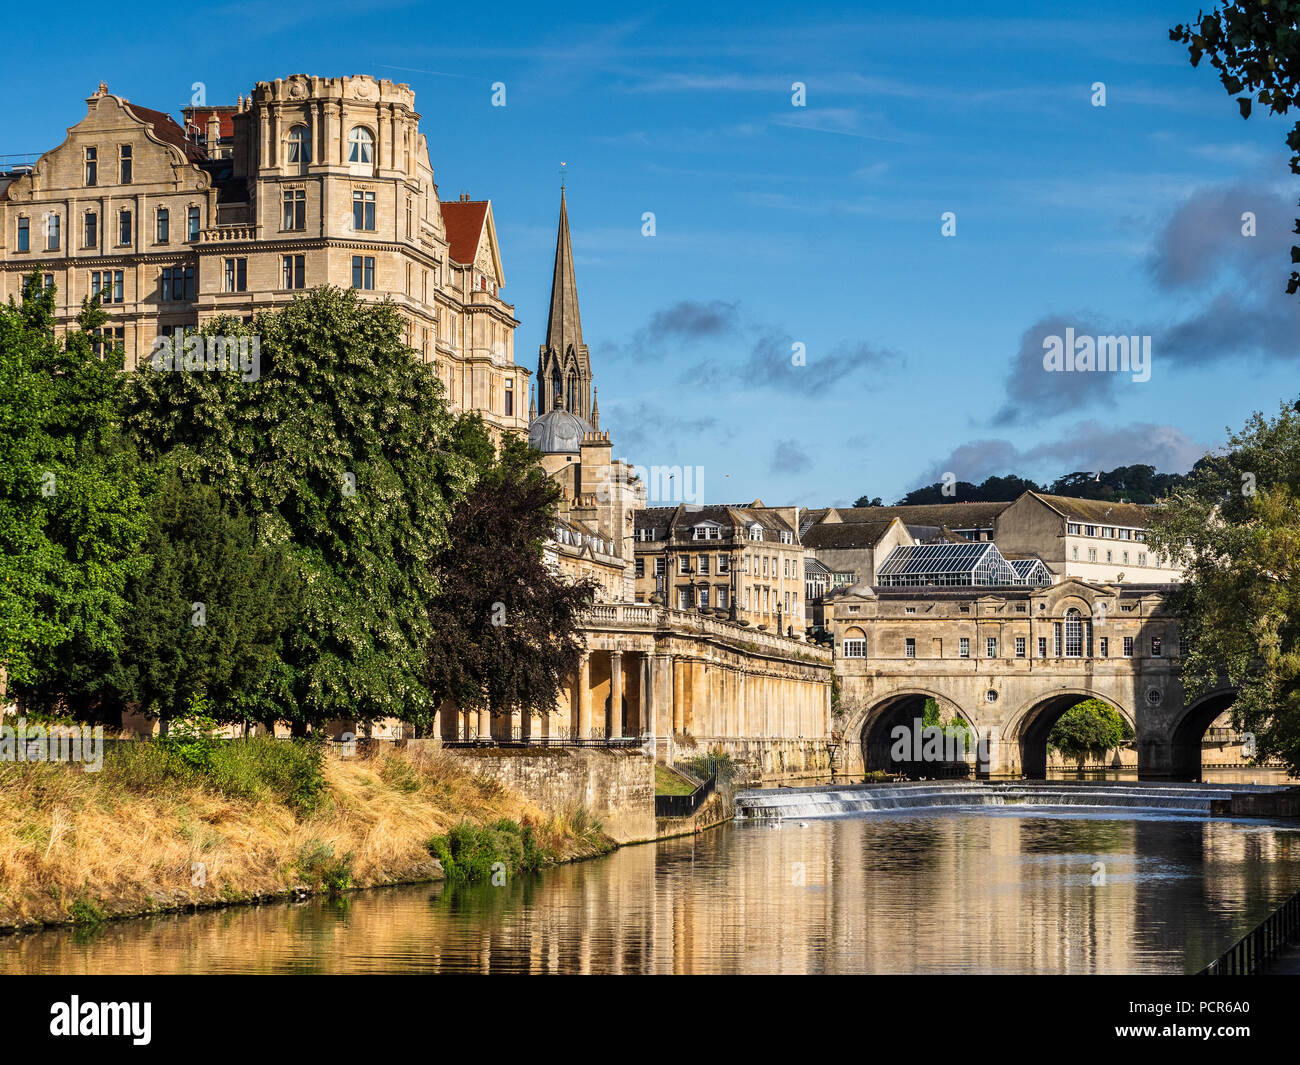 Bath England, Bath Tourism, view of the Pulteney Bridge and River Avon in central Bath Stock Photo